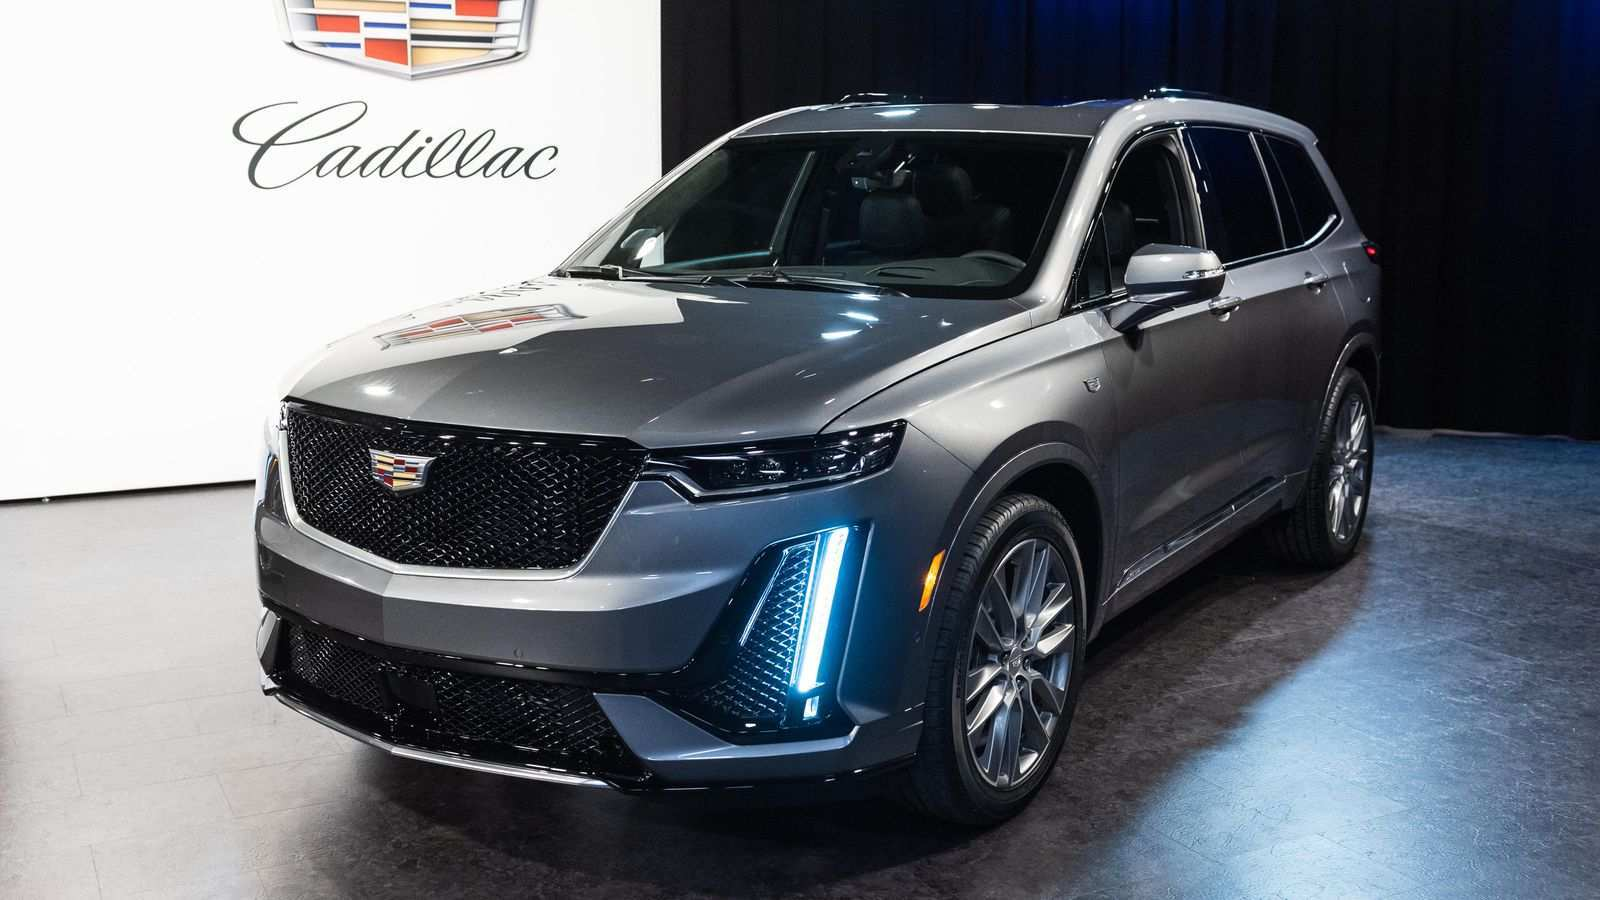 67 Best What Cars Will Cadillac Make In 2020 Spy Shoot